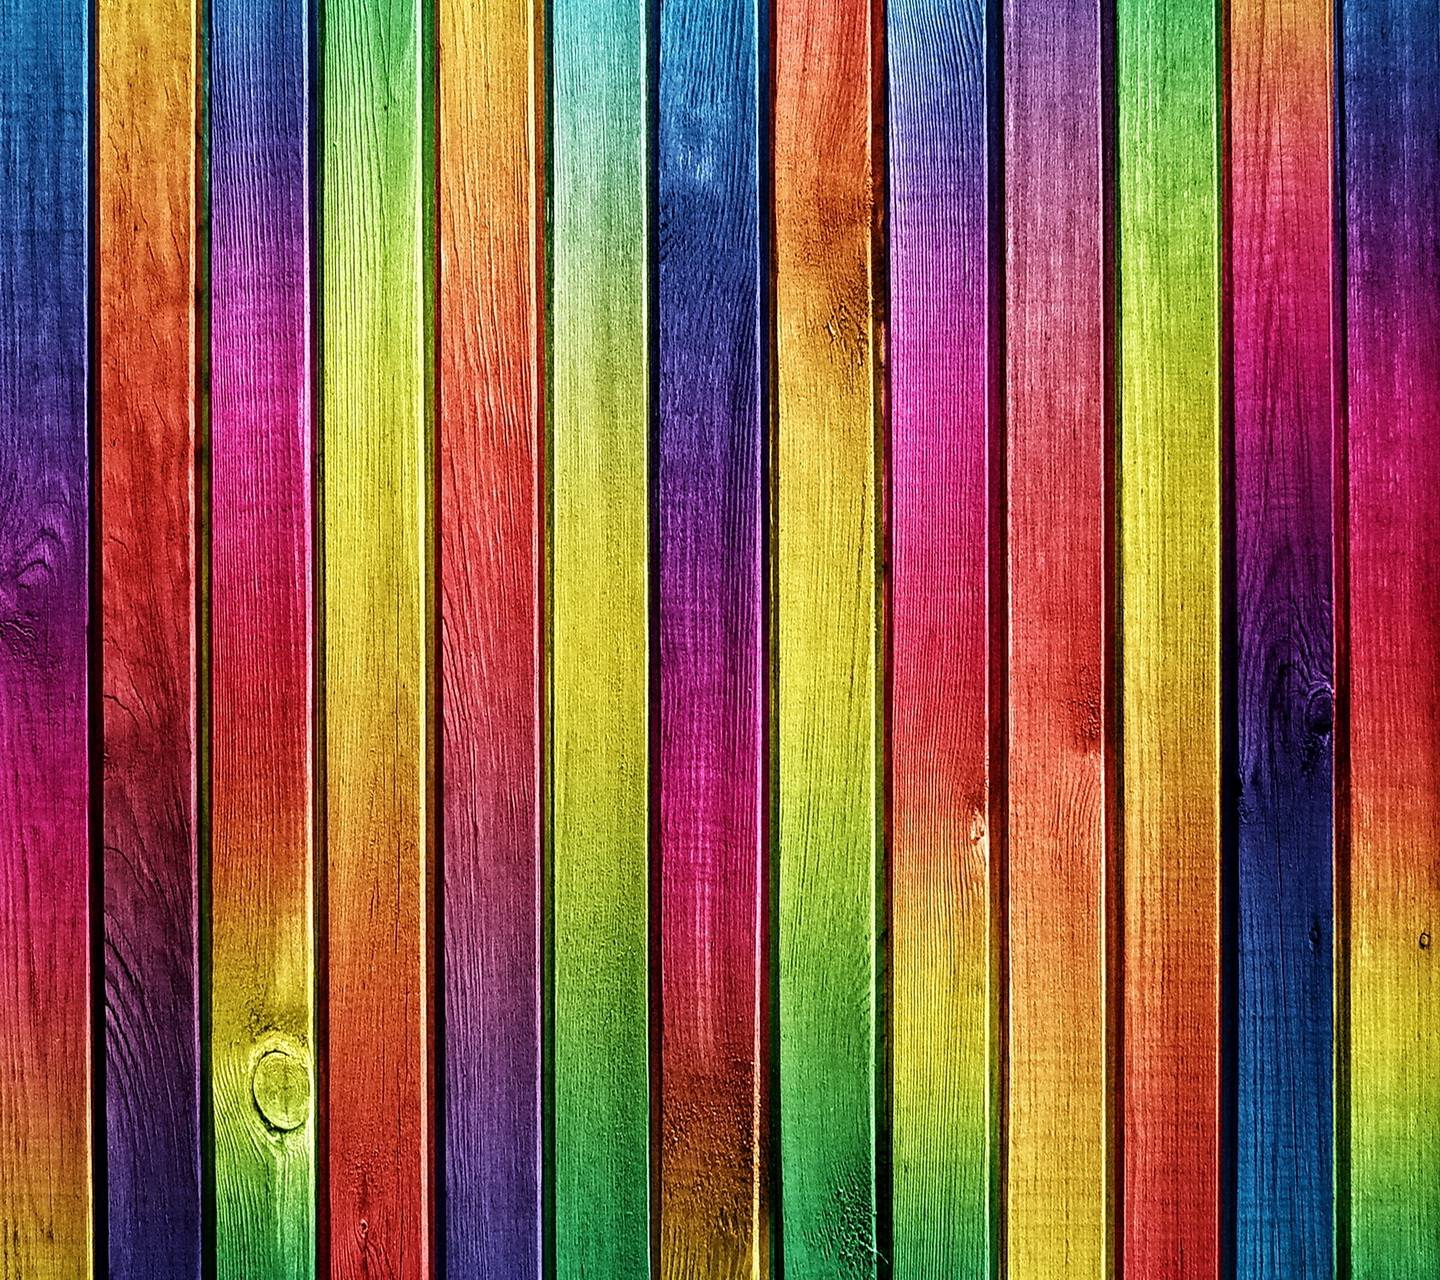 Painted Wood